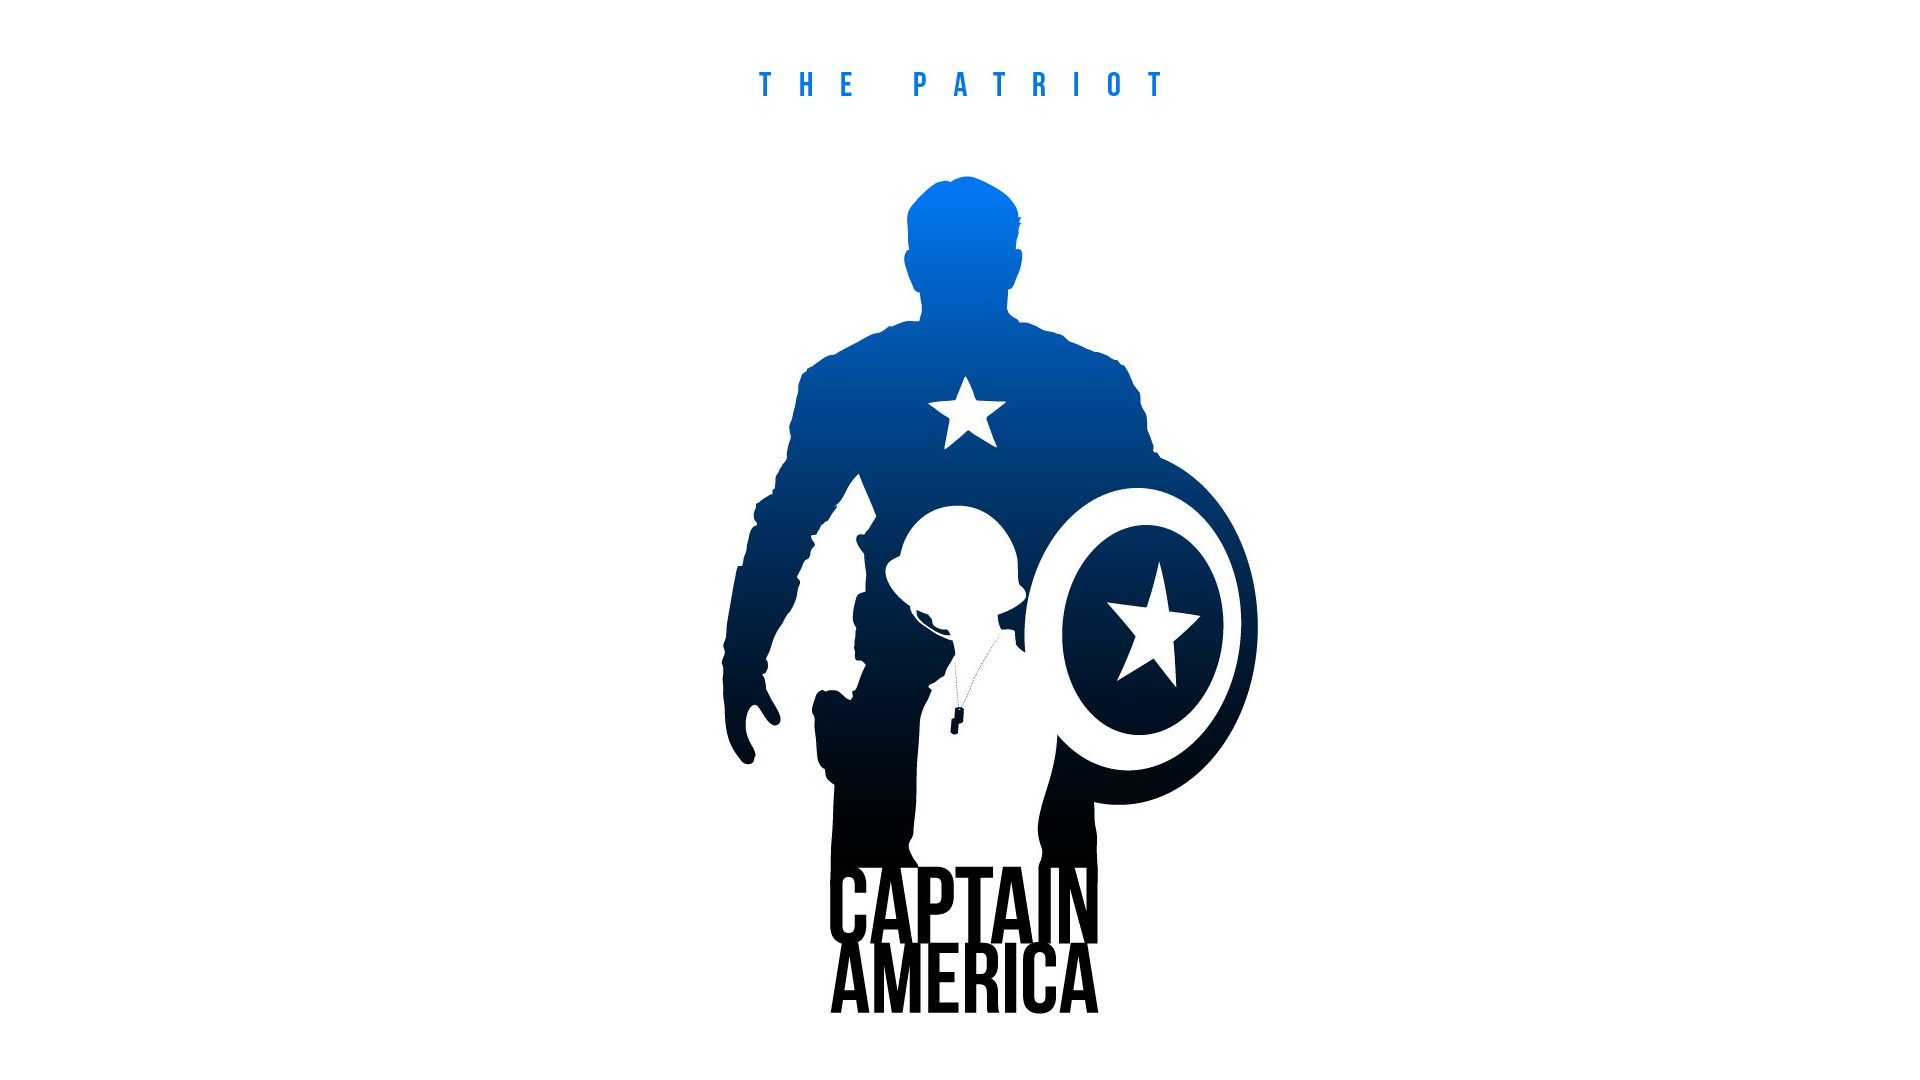 Captain-America-HD-wallpaper-wpc5803241